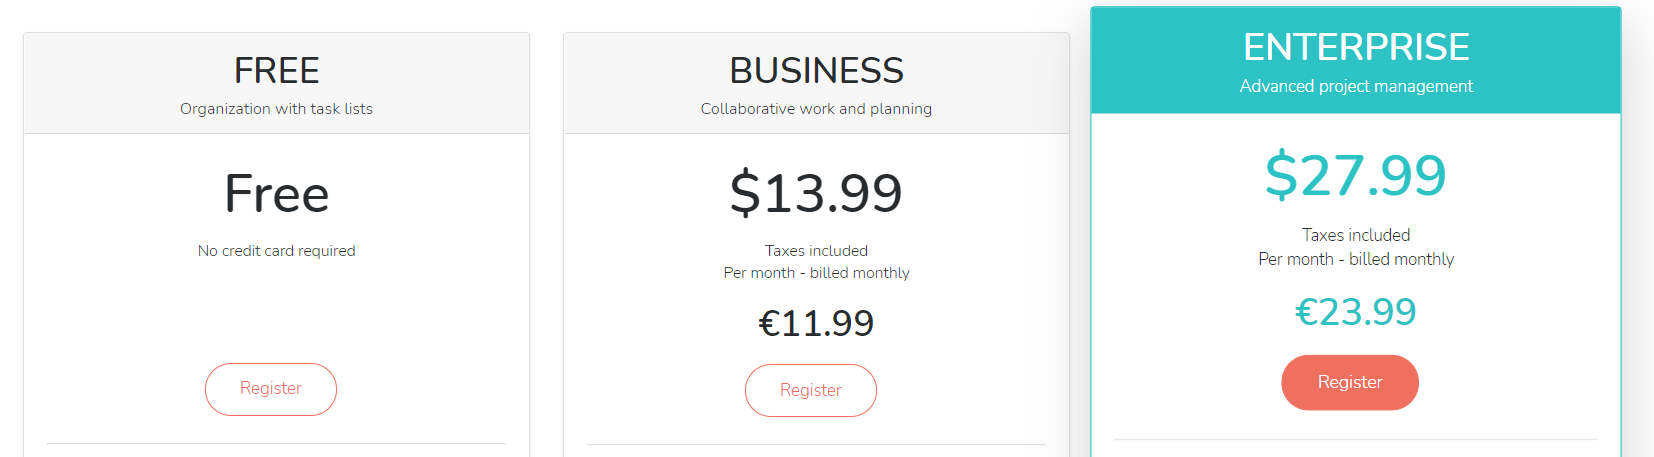 Beebusy pricing plan